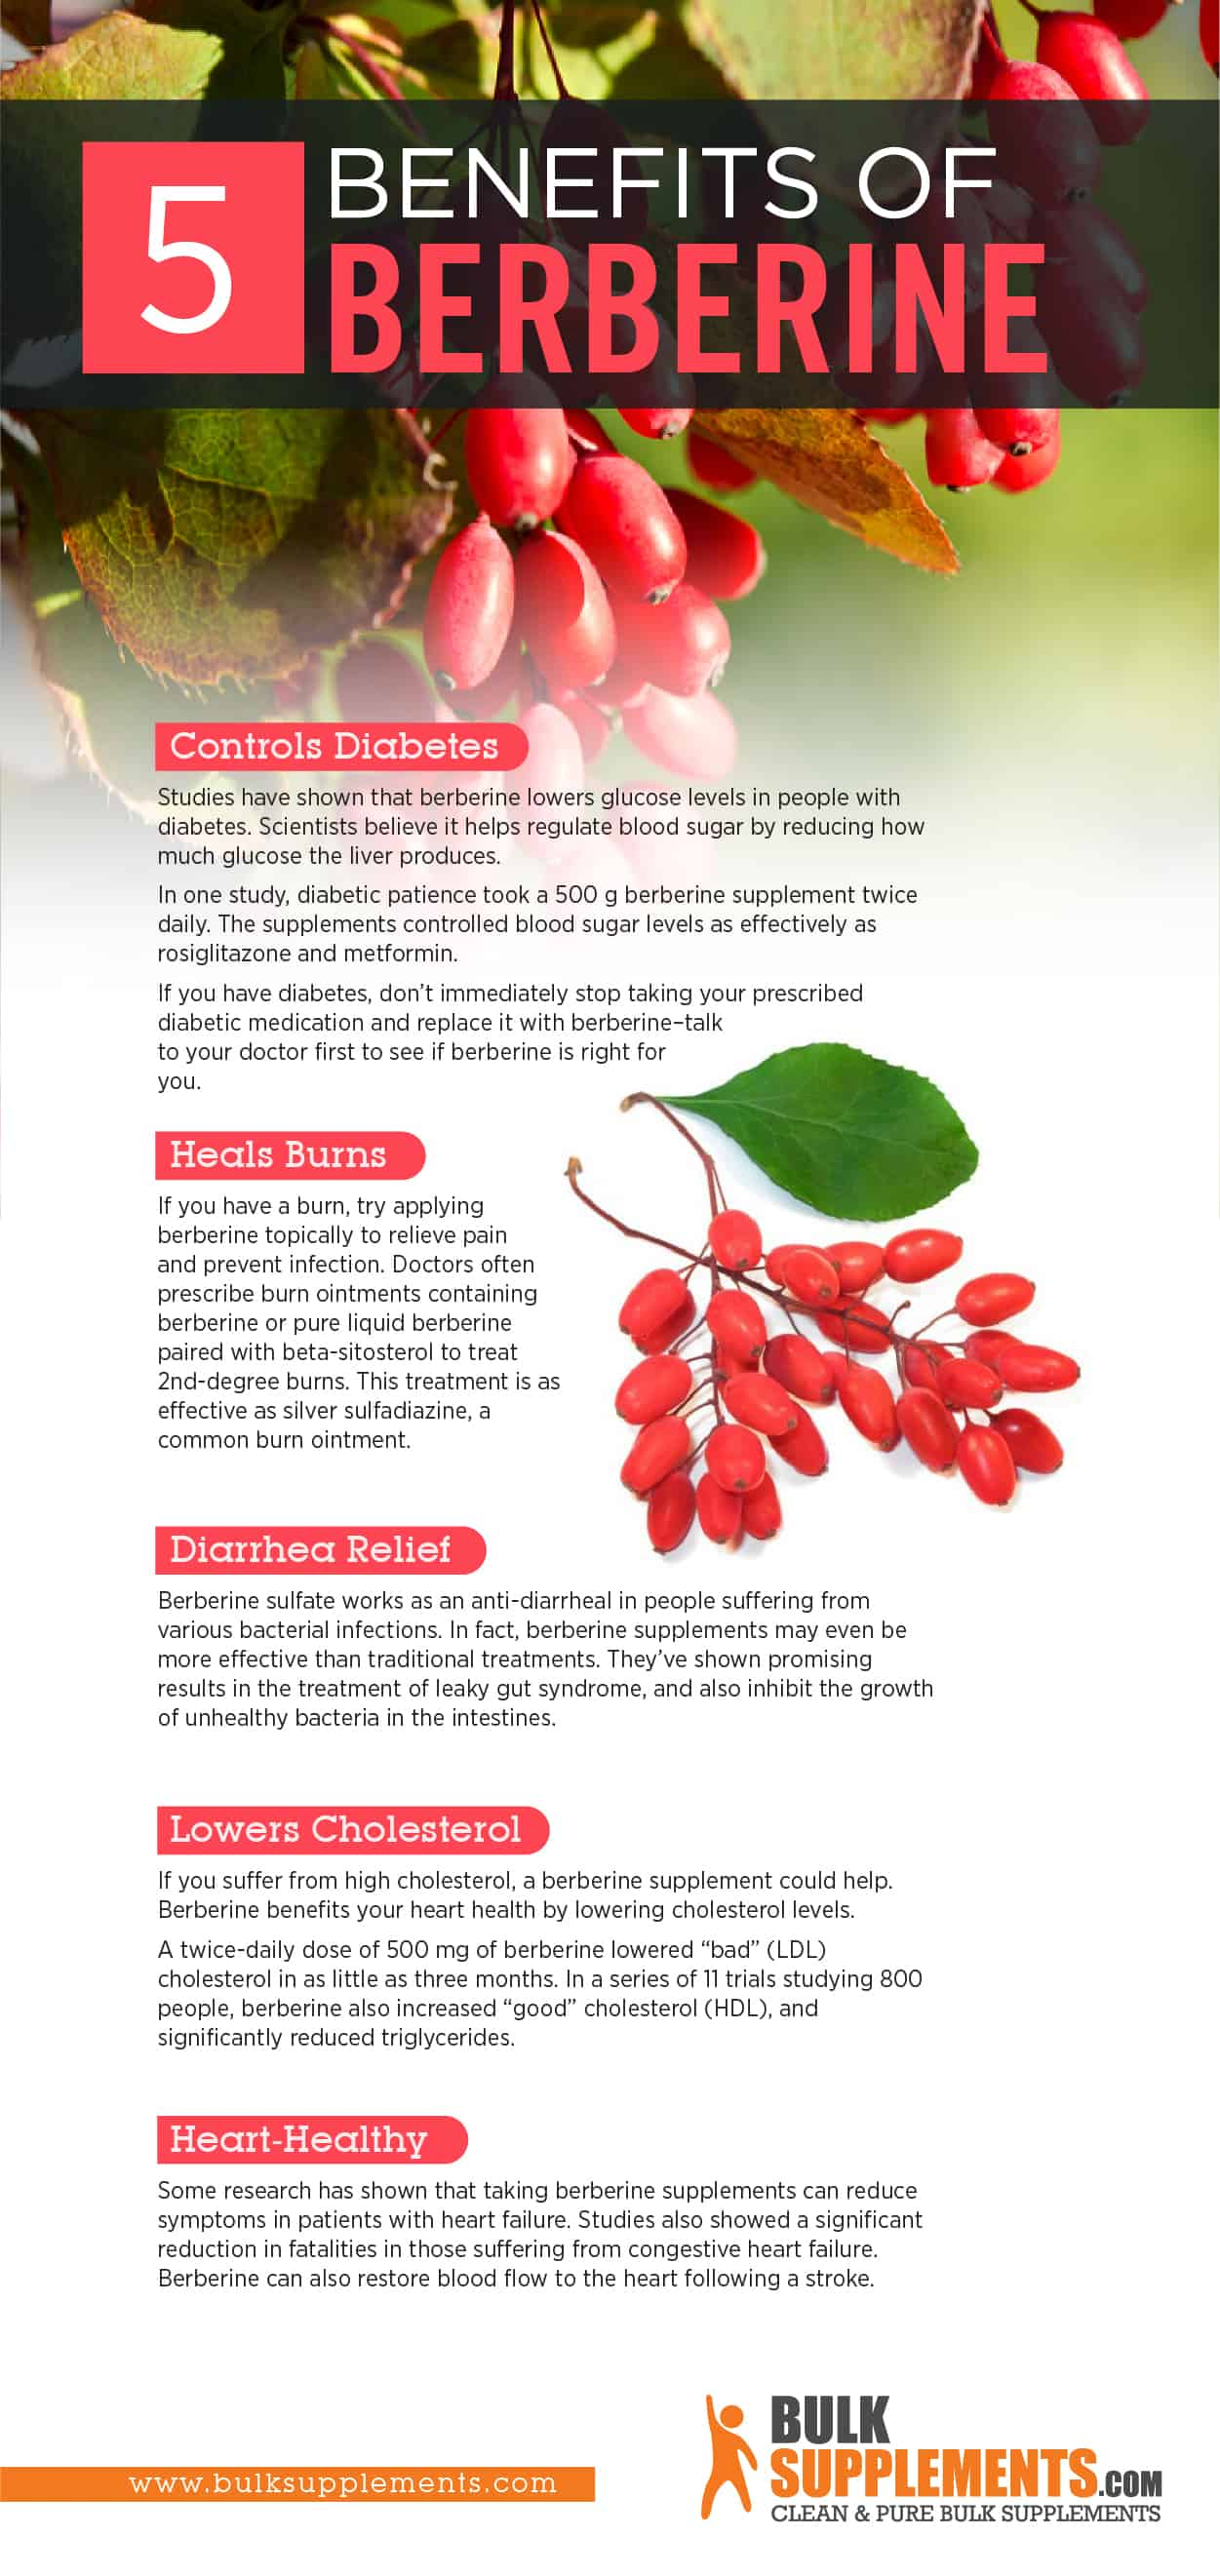 berberine benefits